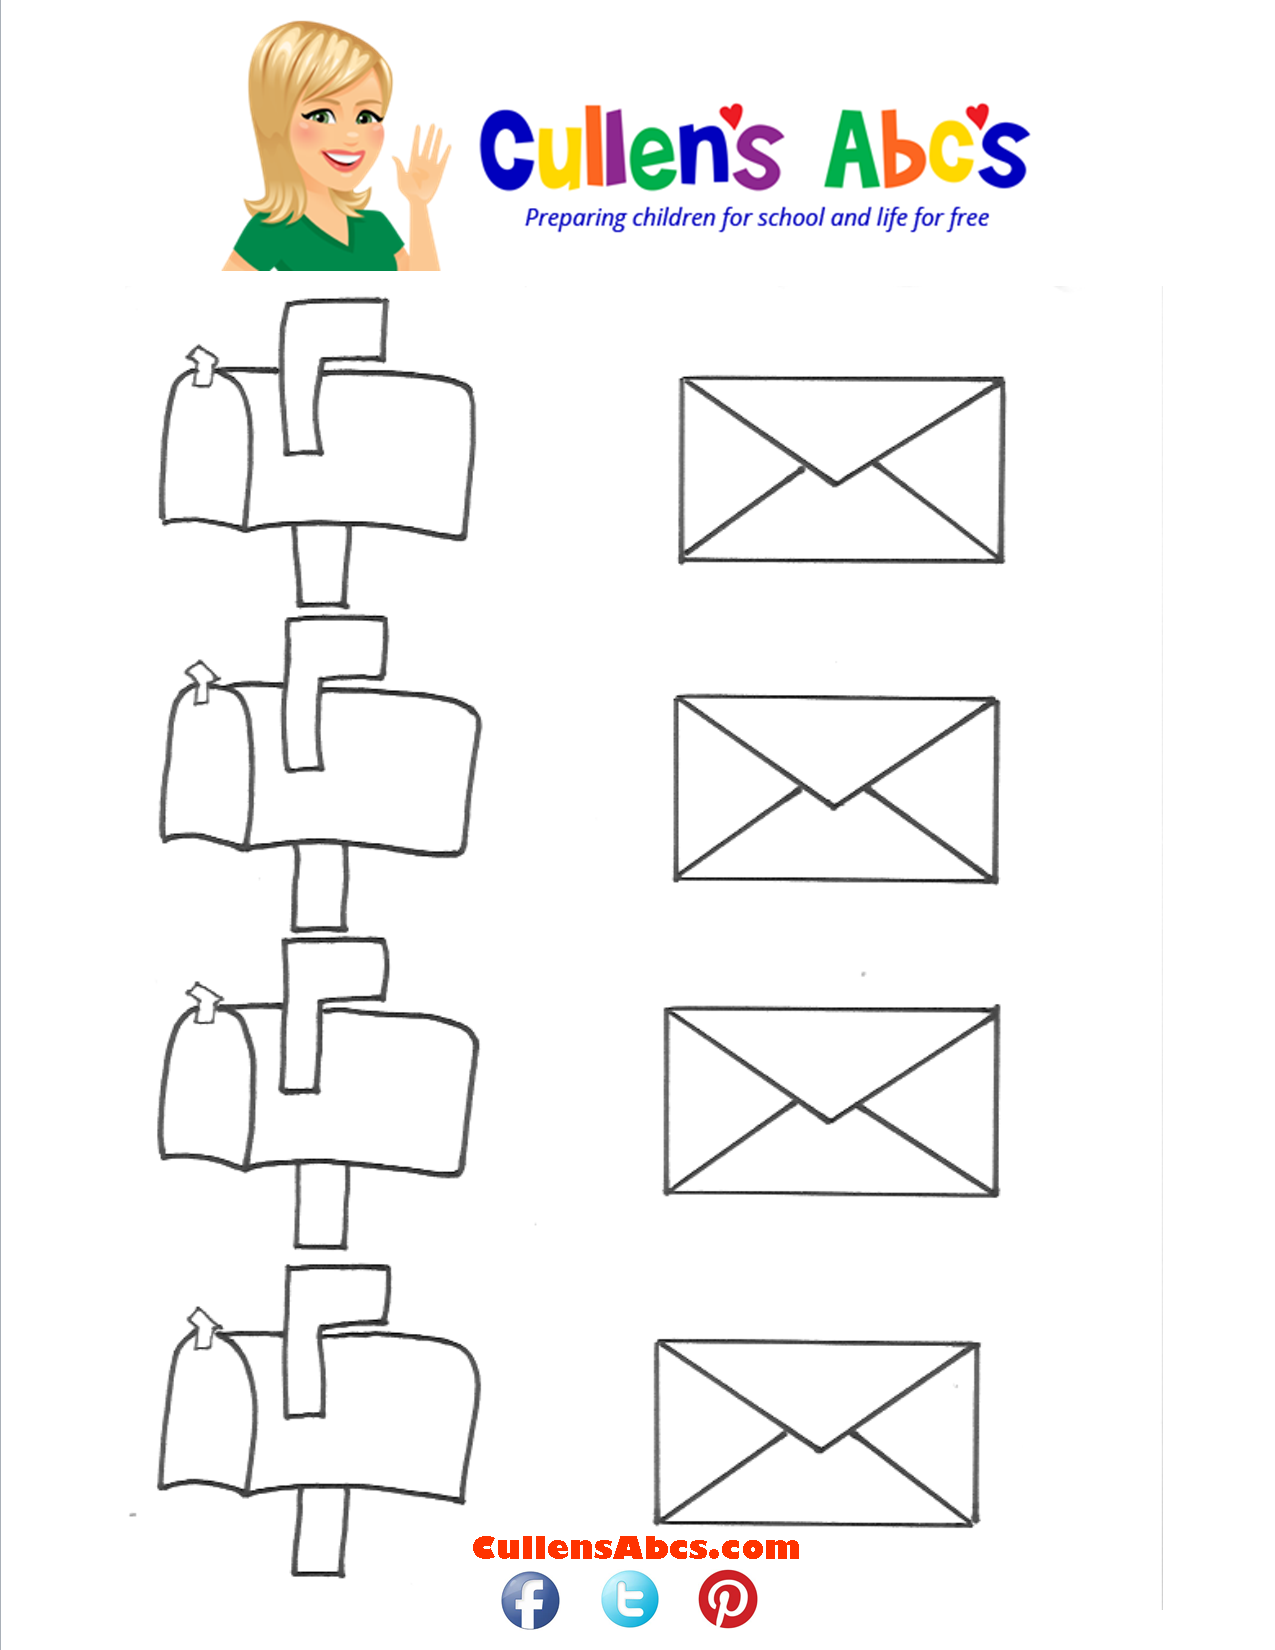 Mailbox and Envelope Matching